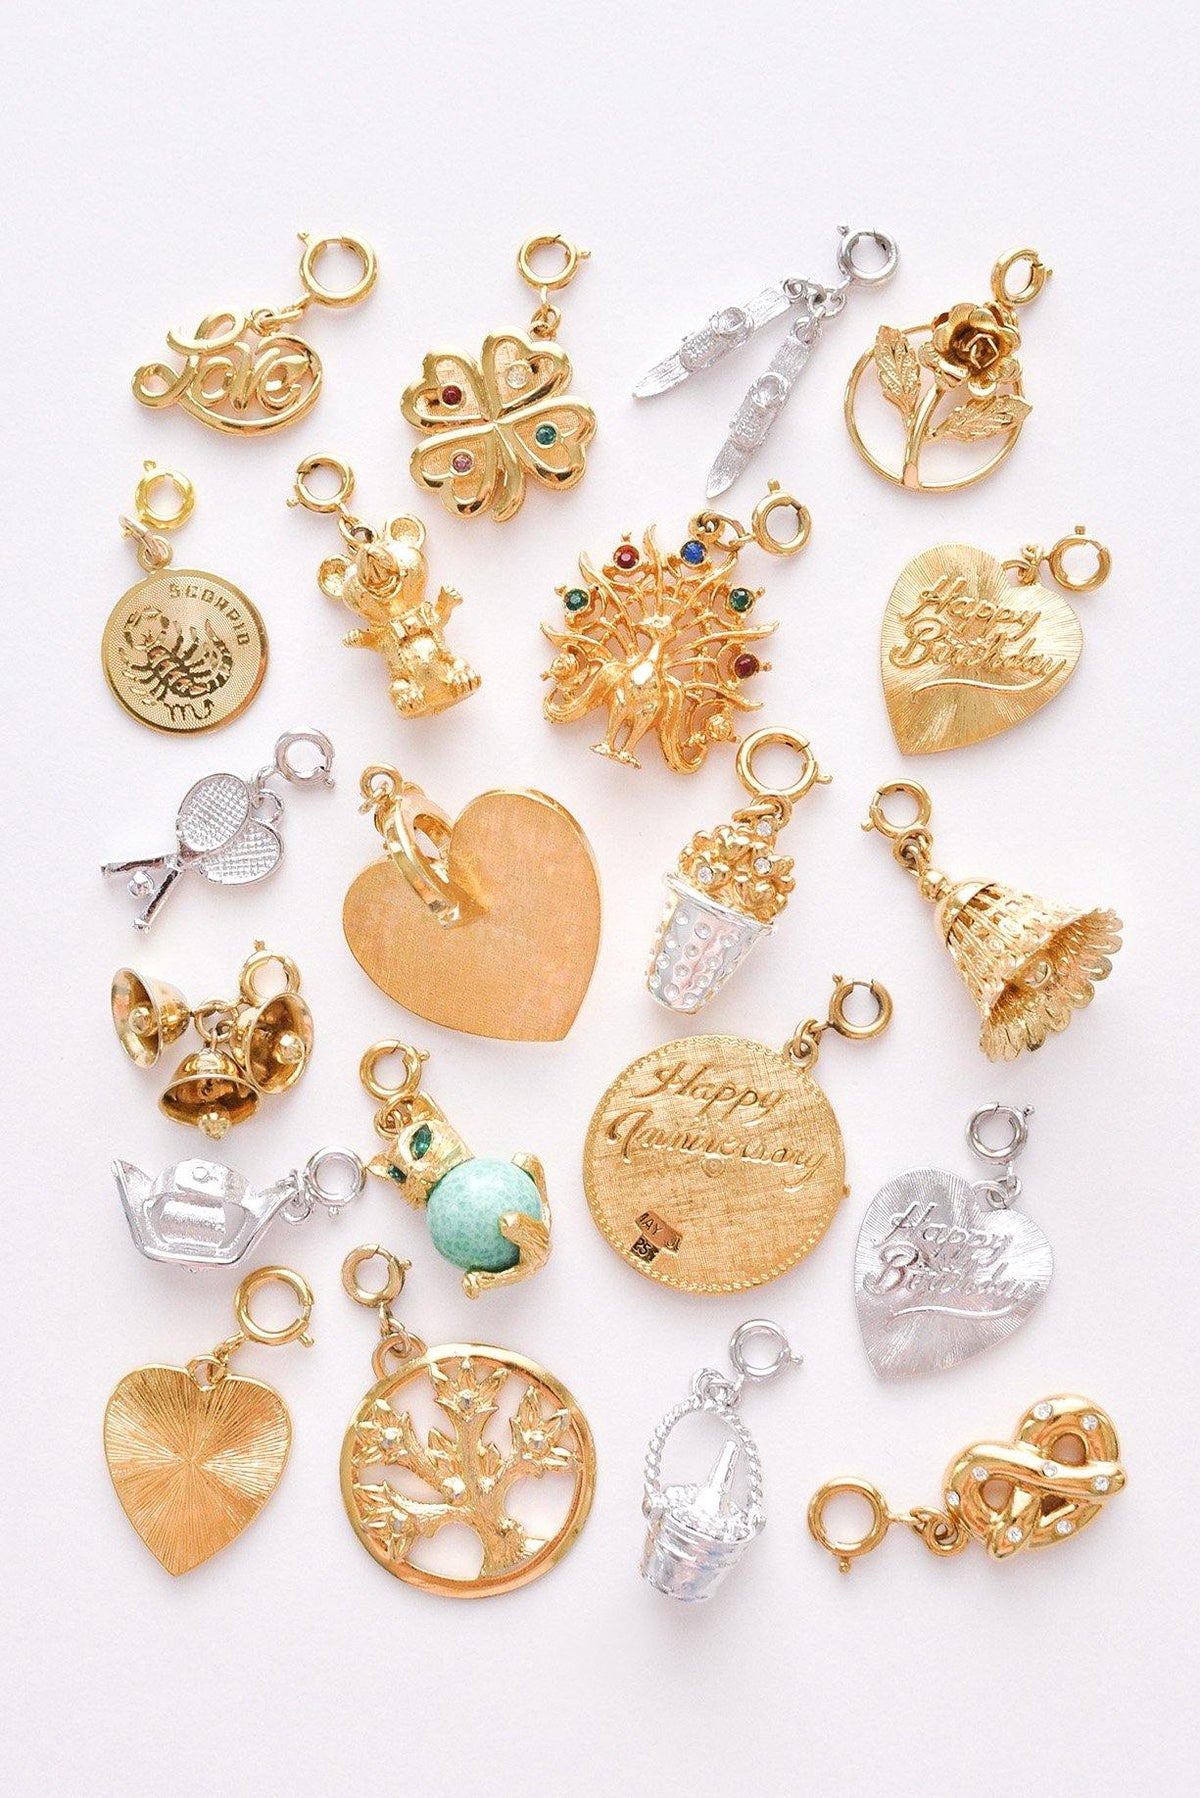 Vintage charms from Sweet & Spark.